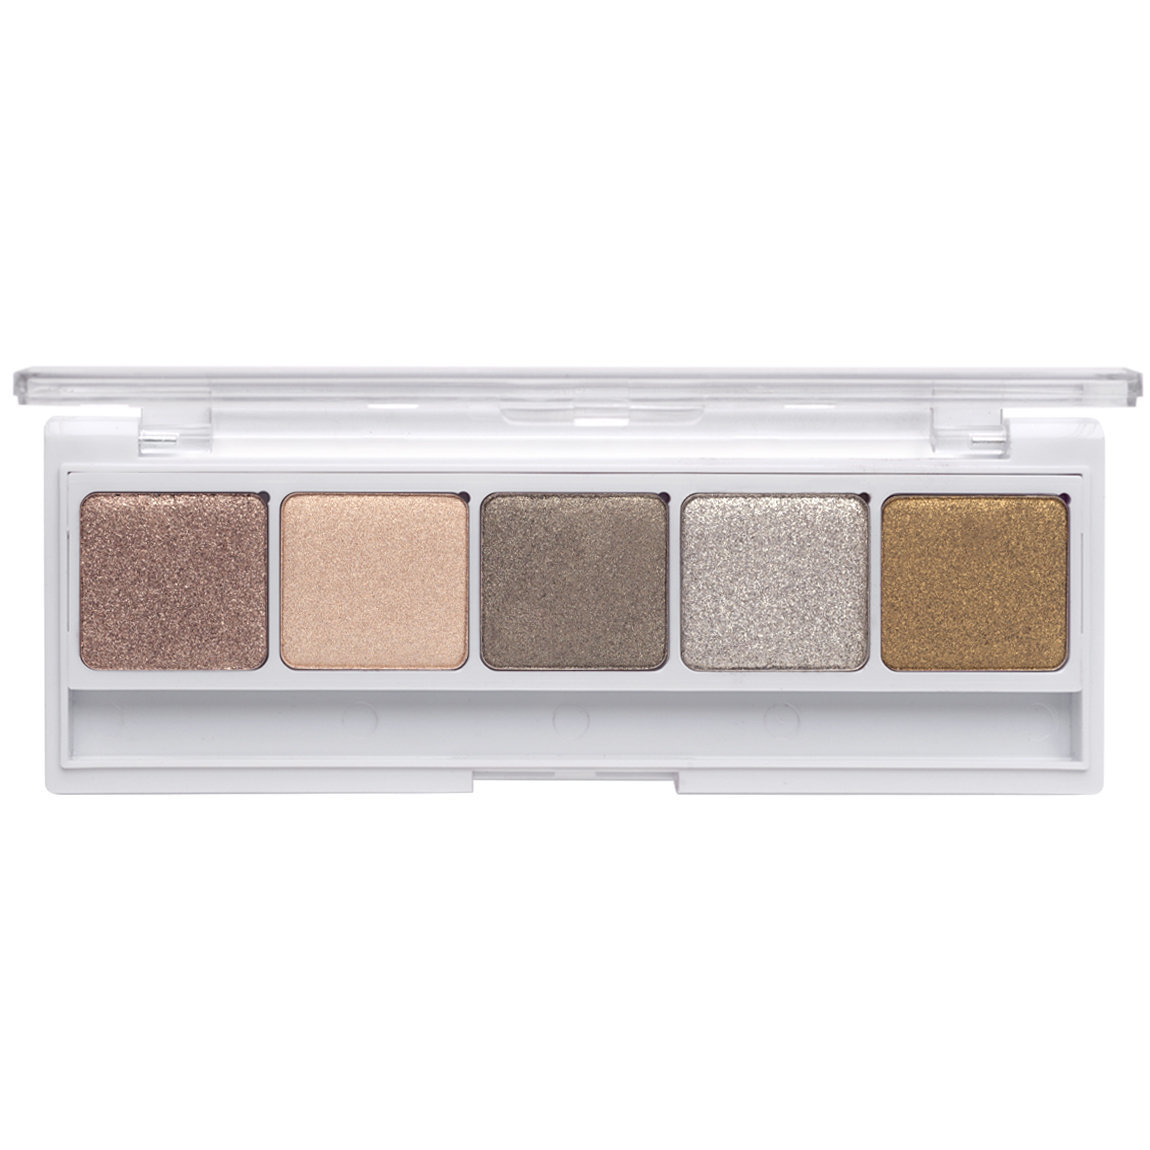 Natasha Denona Eyeshadow Palette 5 Palette 09 alternative view 1.